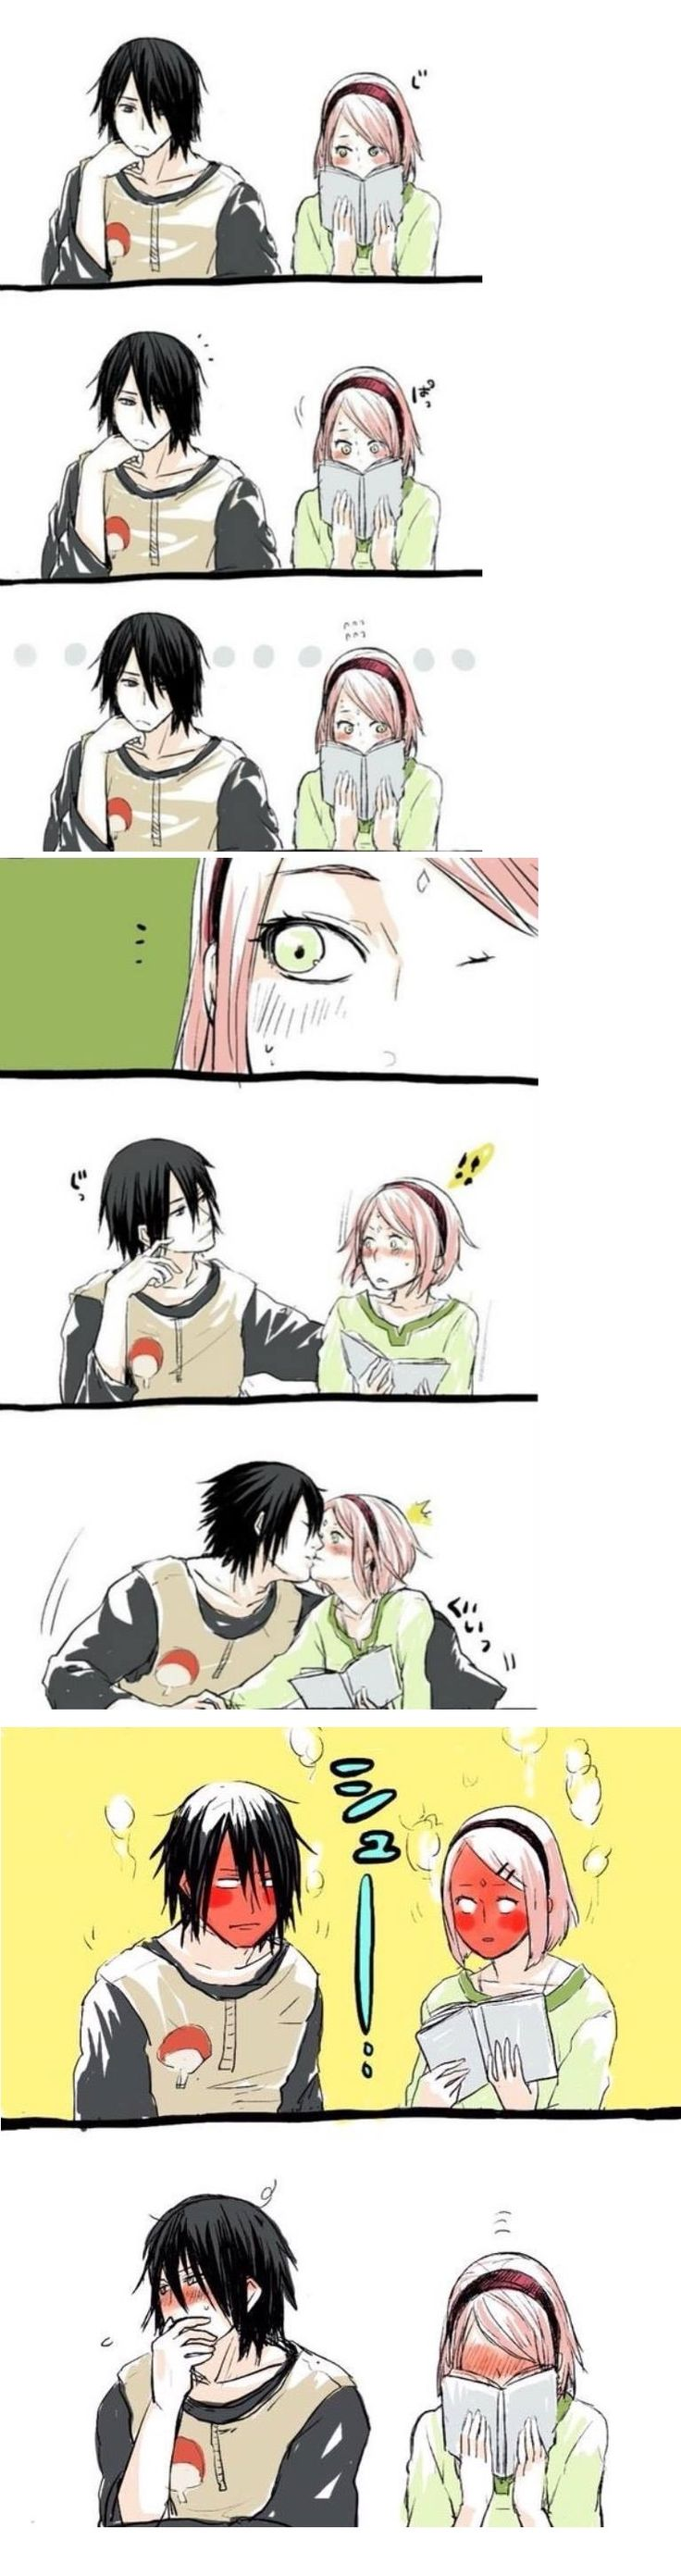 <3 Sasuke & Sakura - their love for each other would be like that.